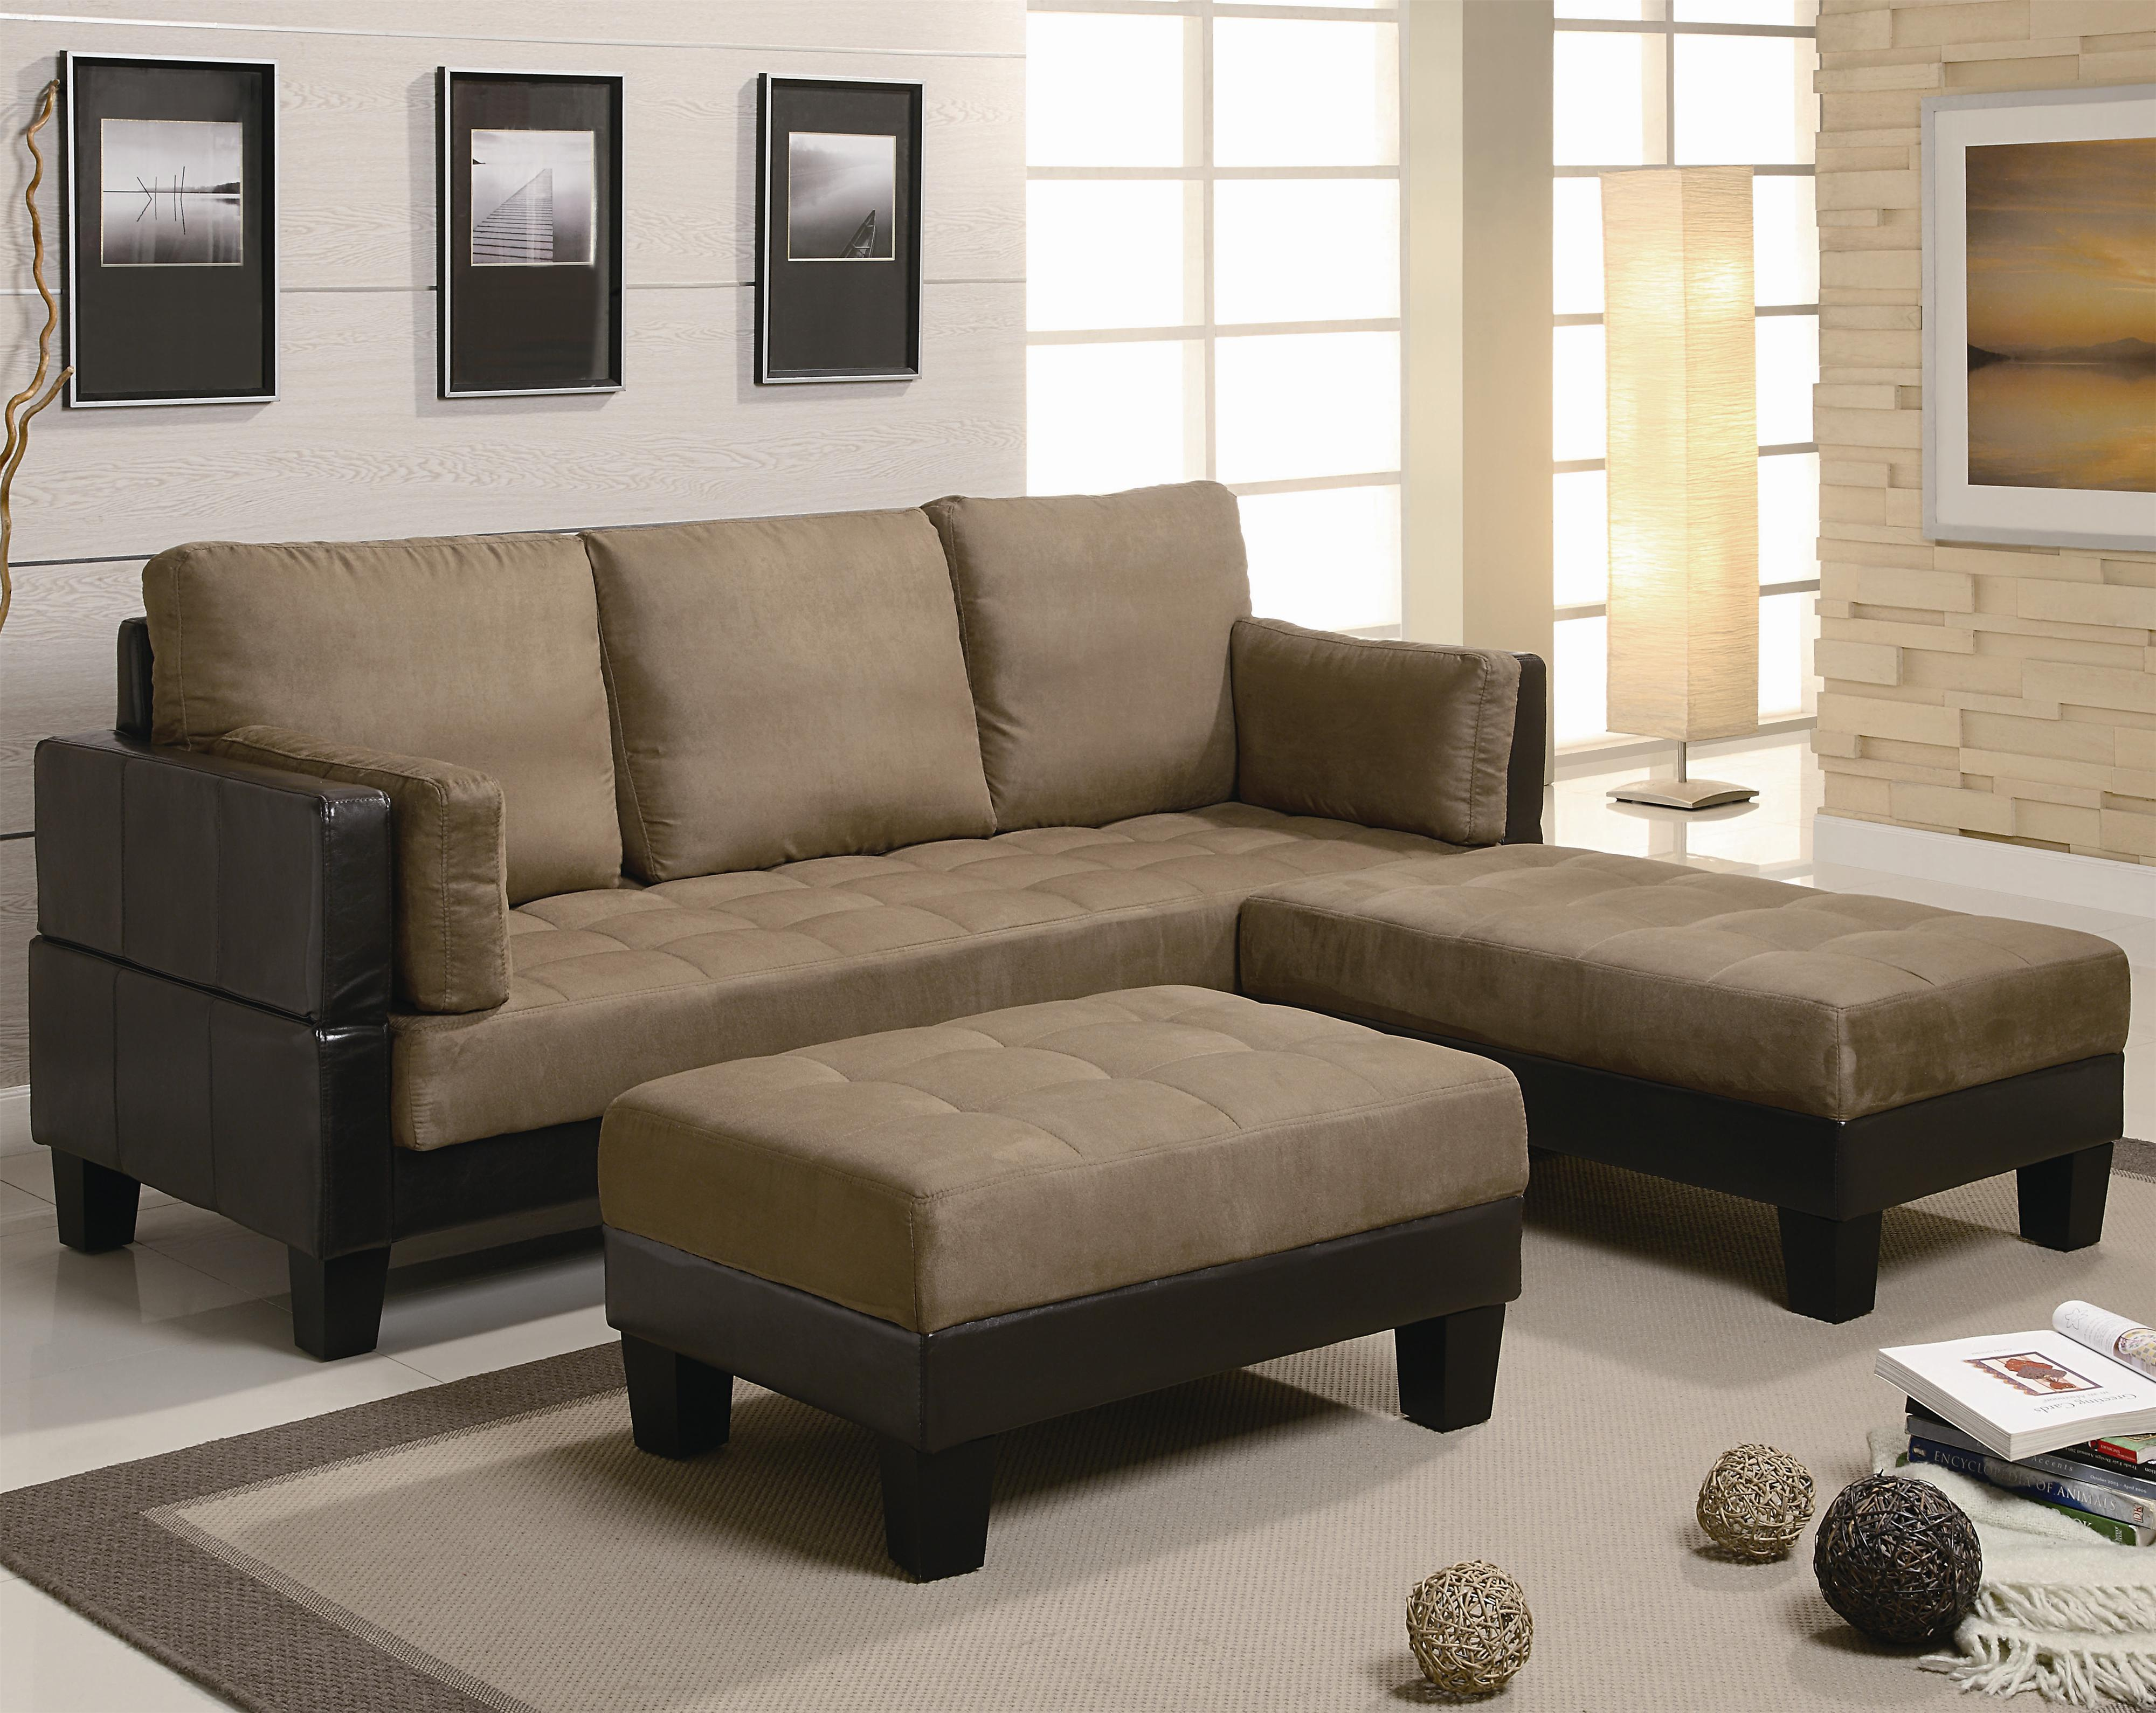 Ellesmere Sofa Bed Group by Coaster at Northeast Factory Direct